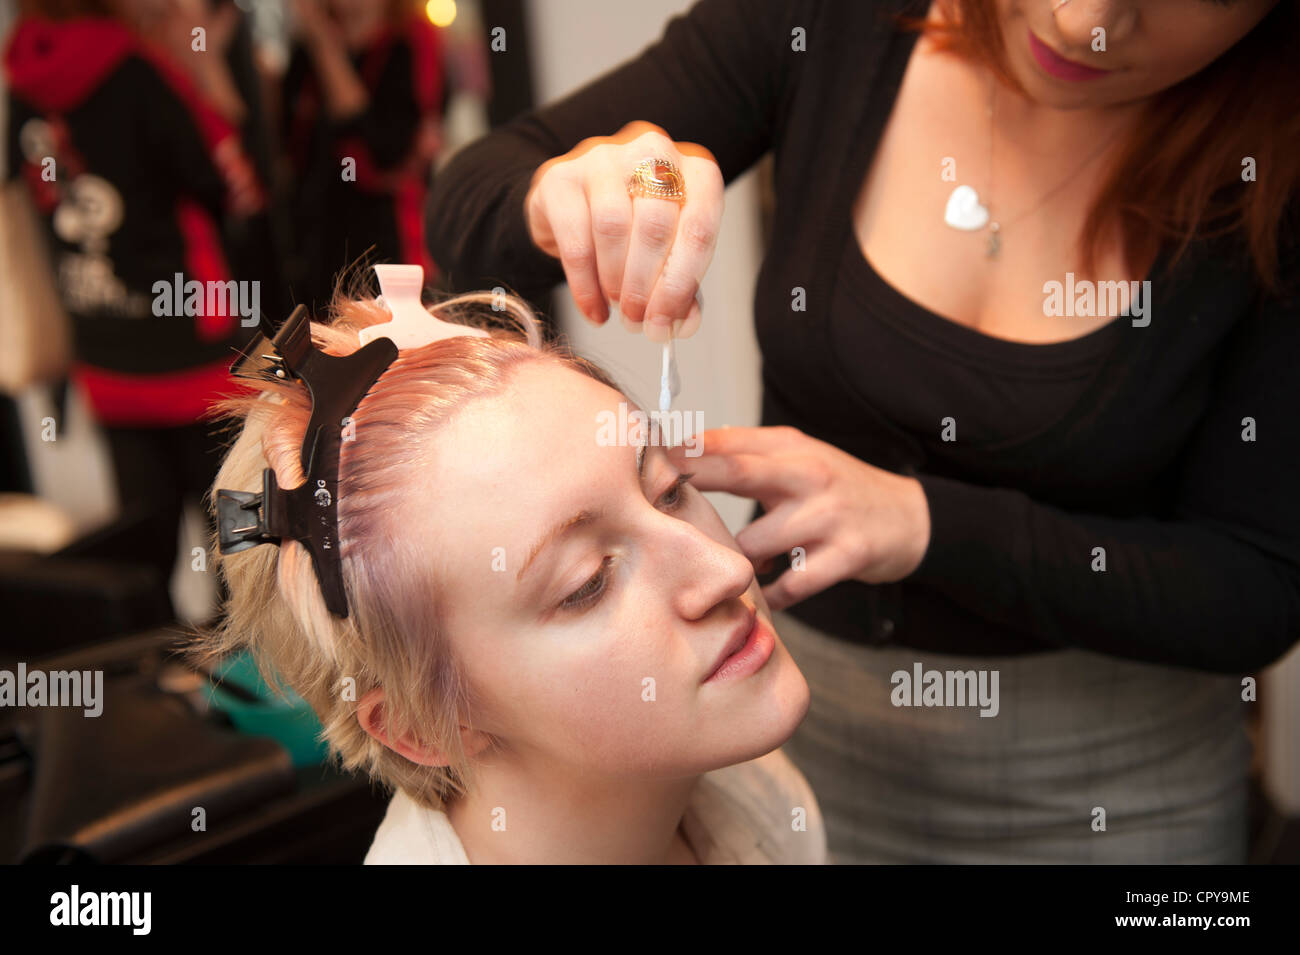 A young woman having a hair and make up beauty make-over in a salon, bleaching her eyebrows, UK Stock Foto